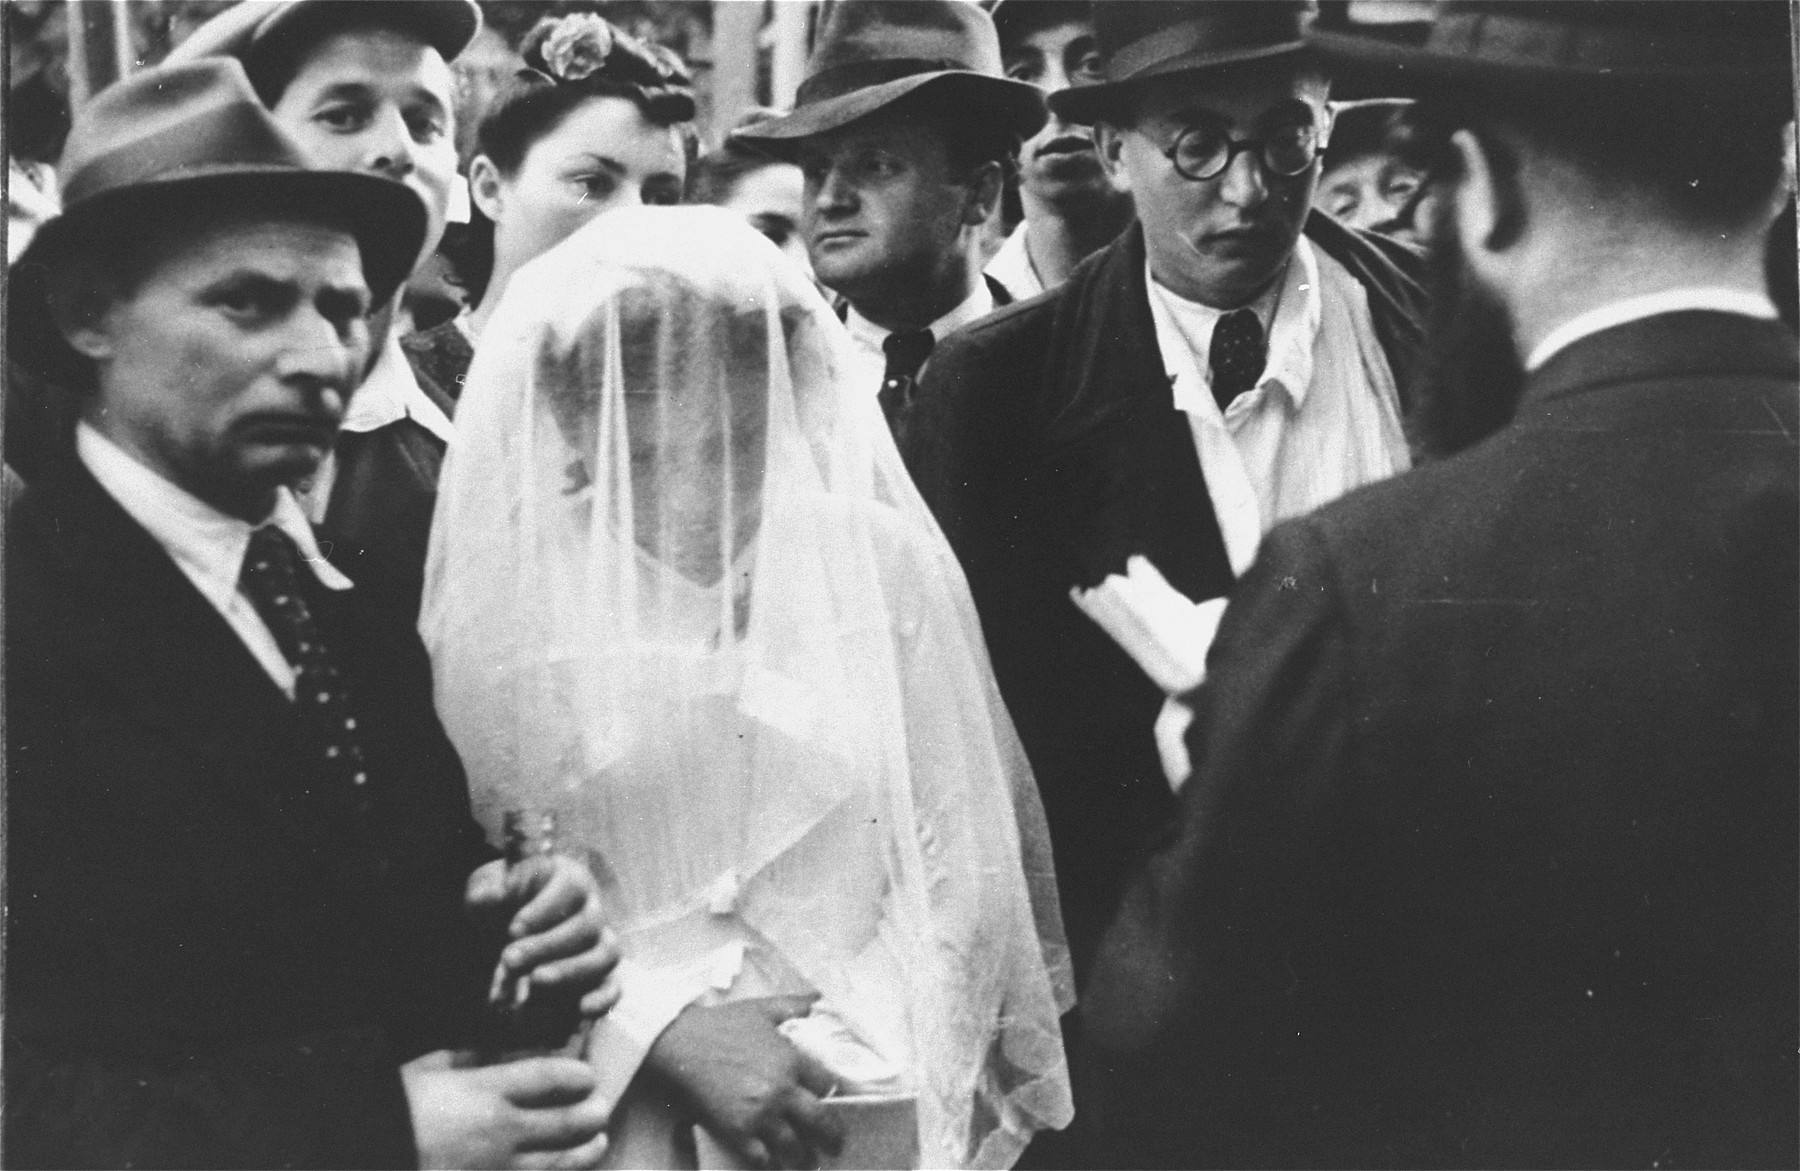 Wedding ceremony at the Zeilsheim displaced persons' camp.  The rabbi recites the marriage blessings under the huppah (canopy).